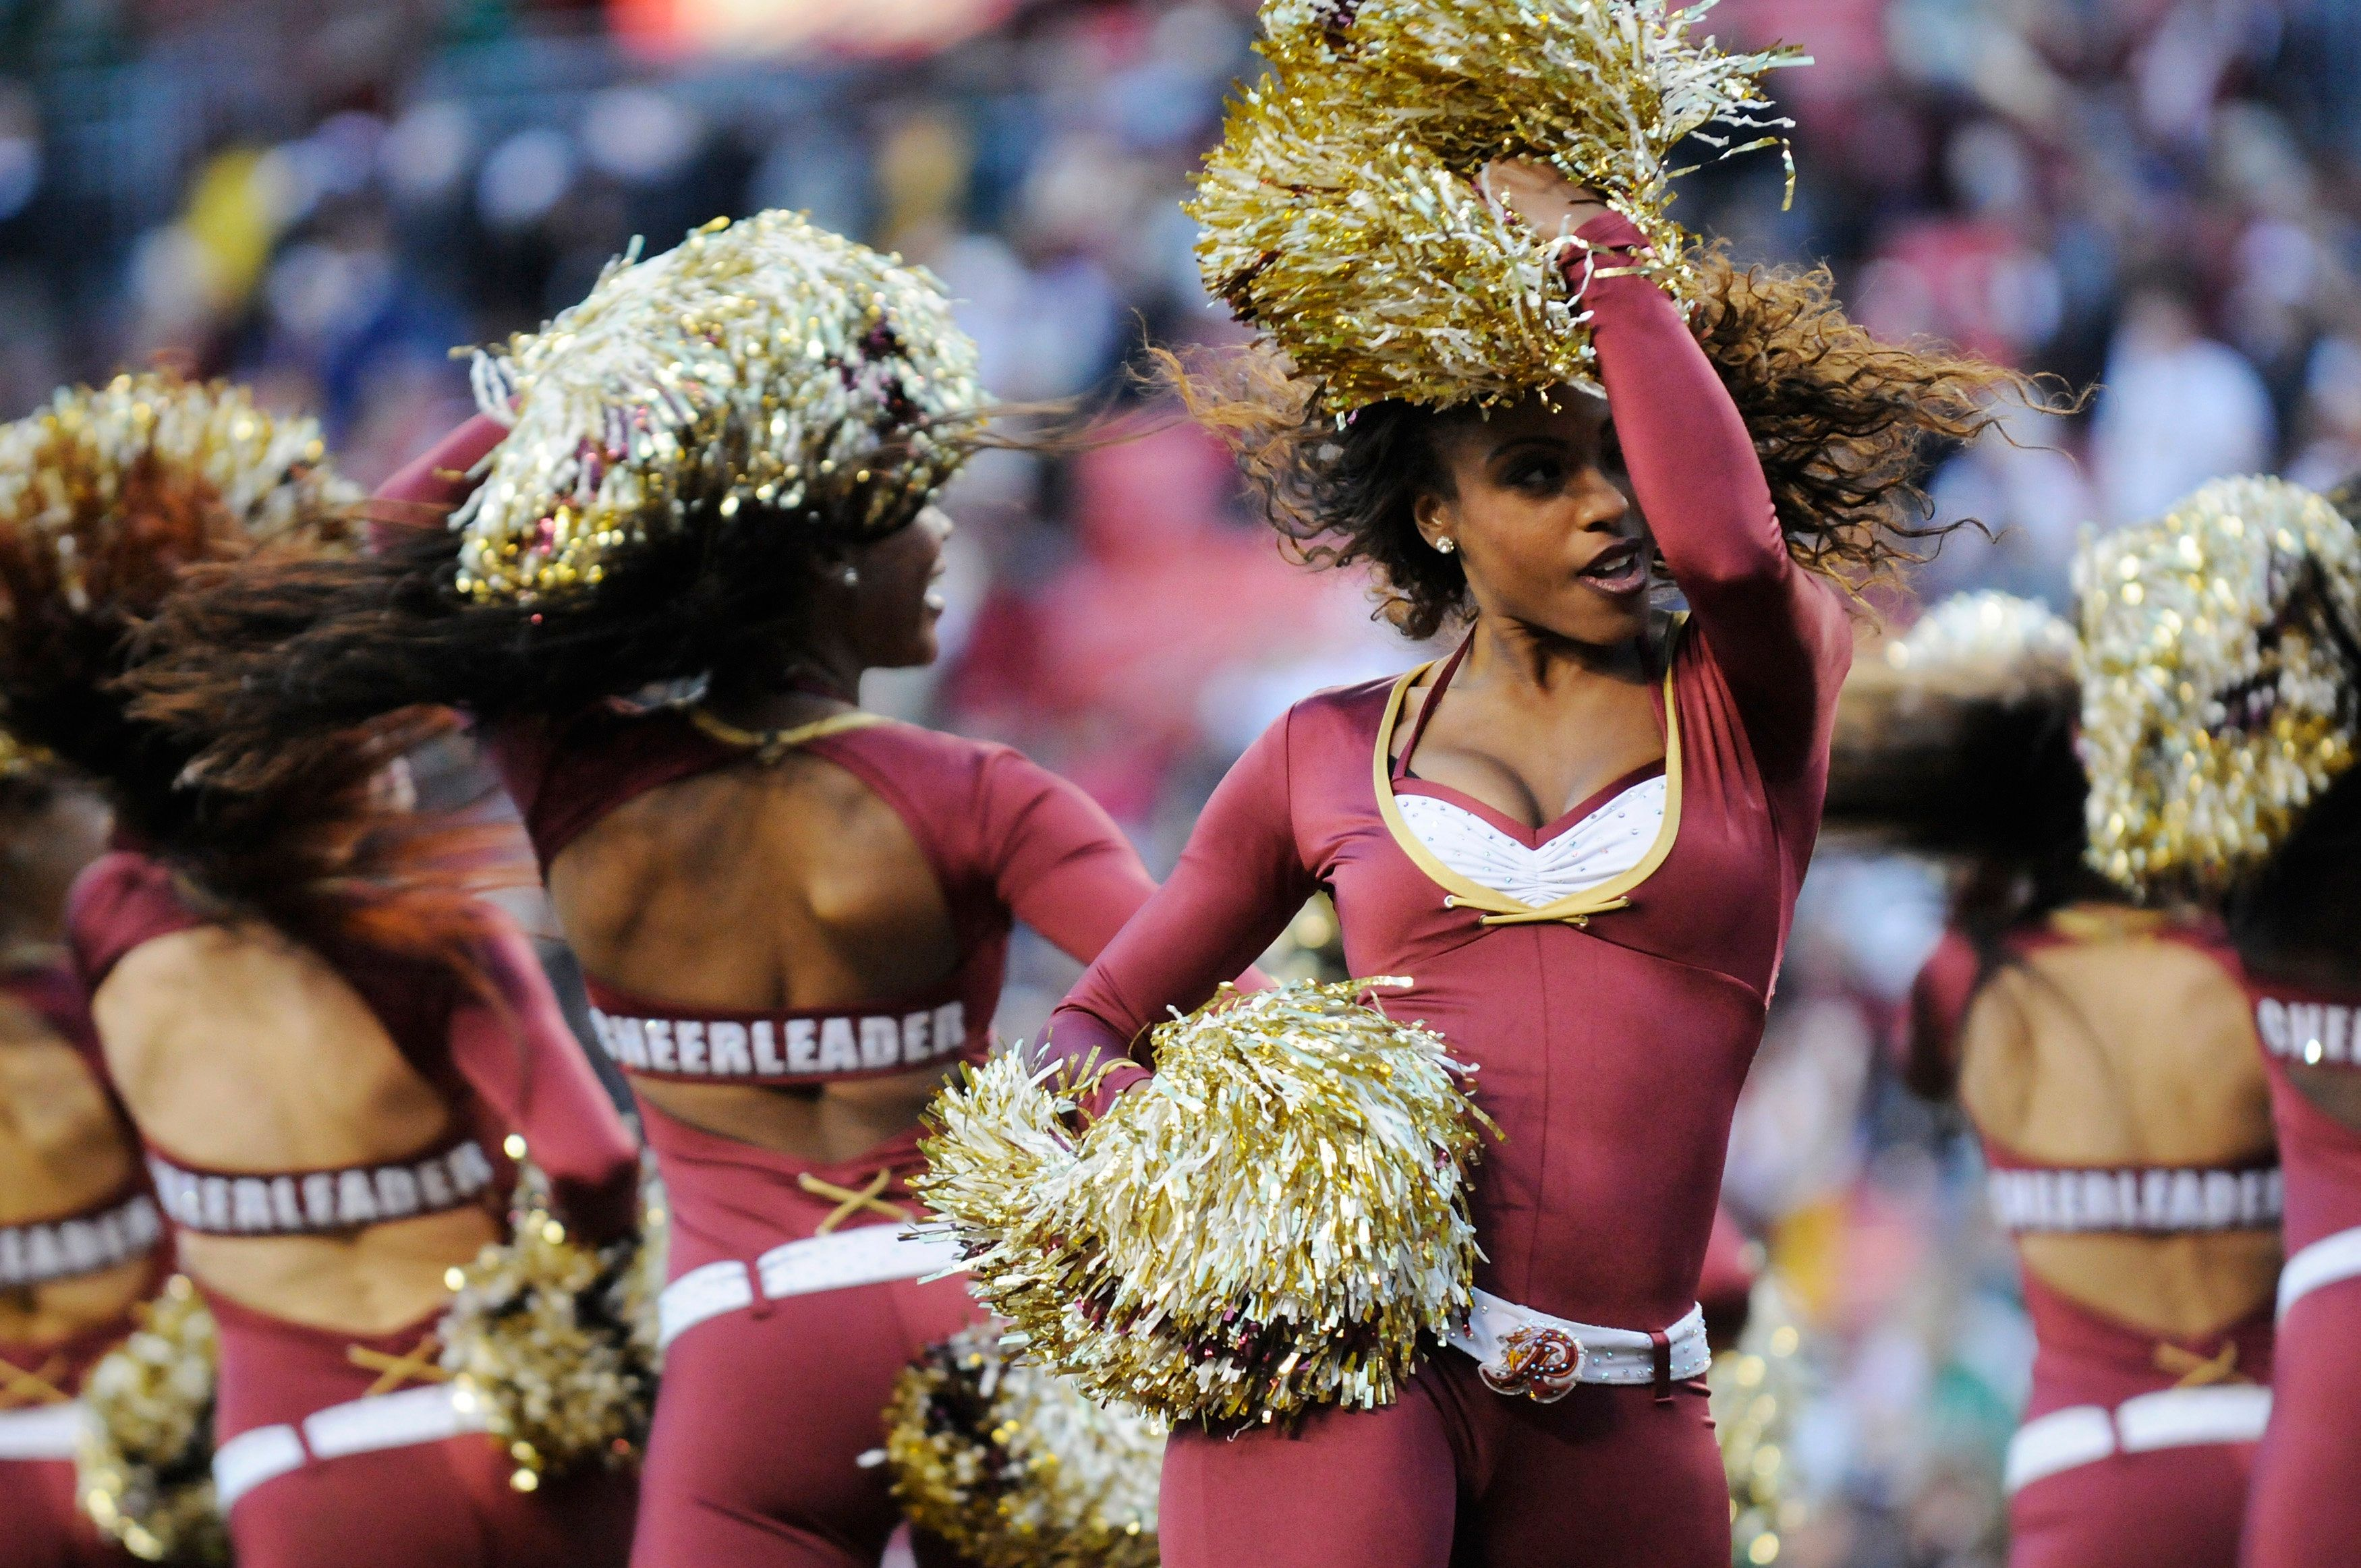 Redskins cheerleaders served as escorts on trip